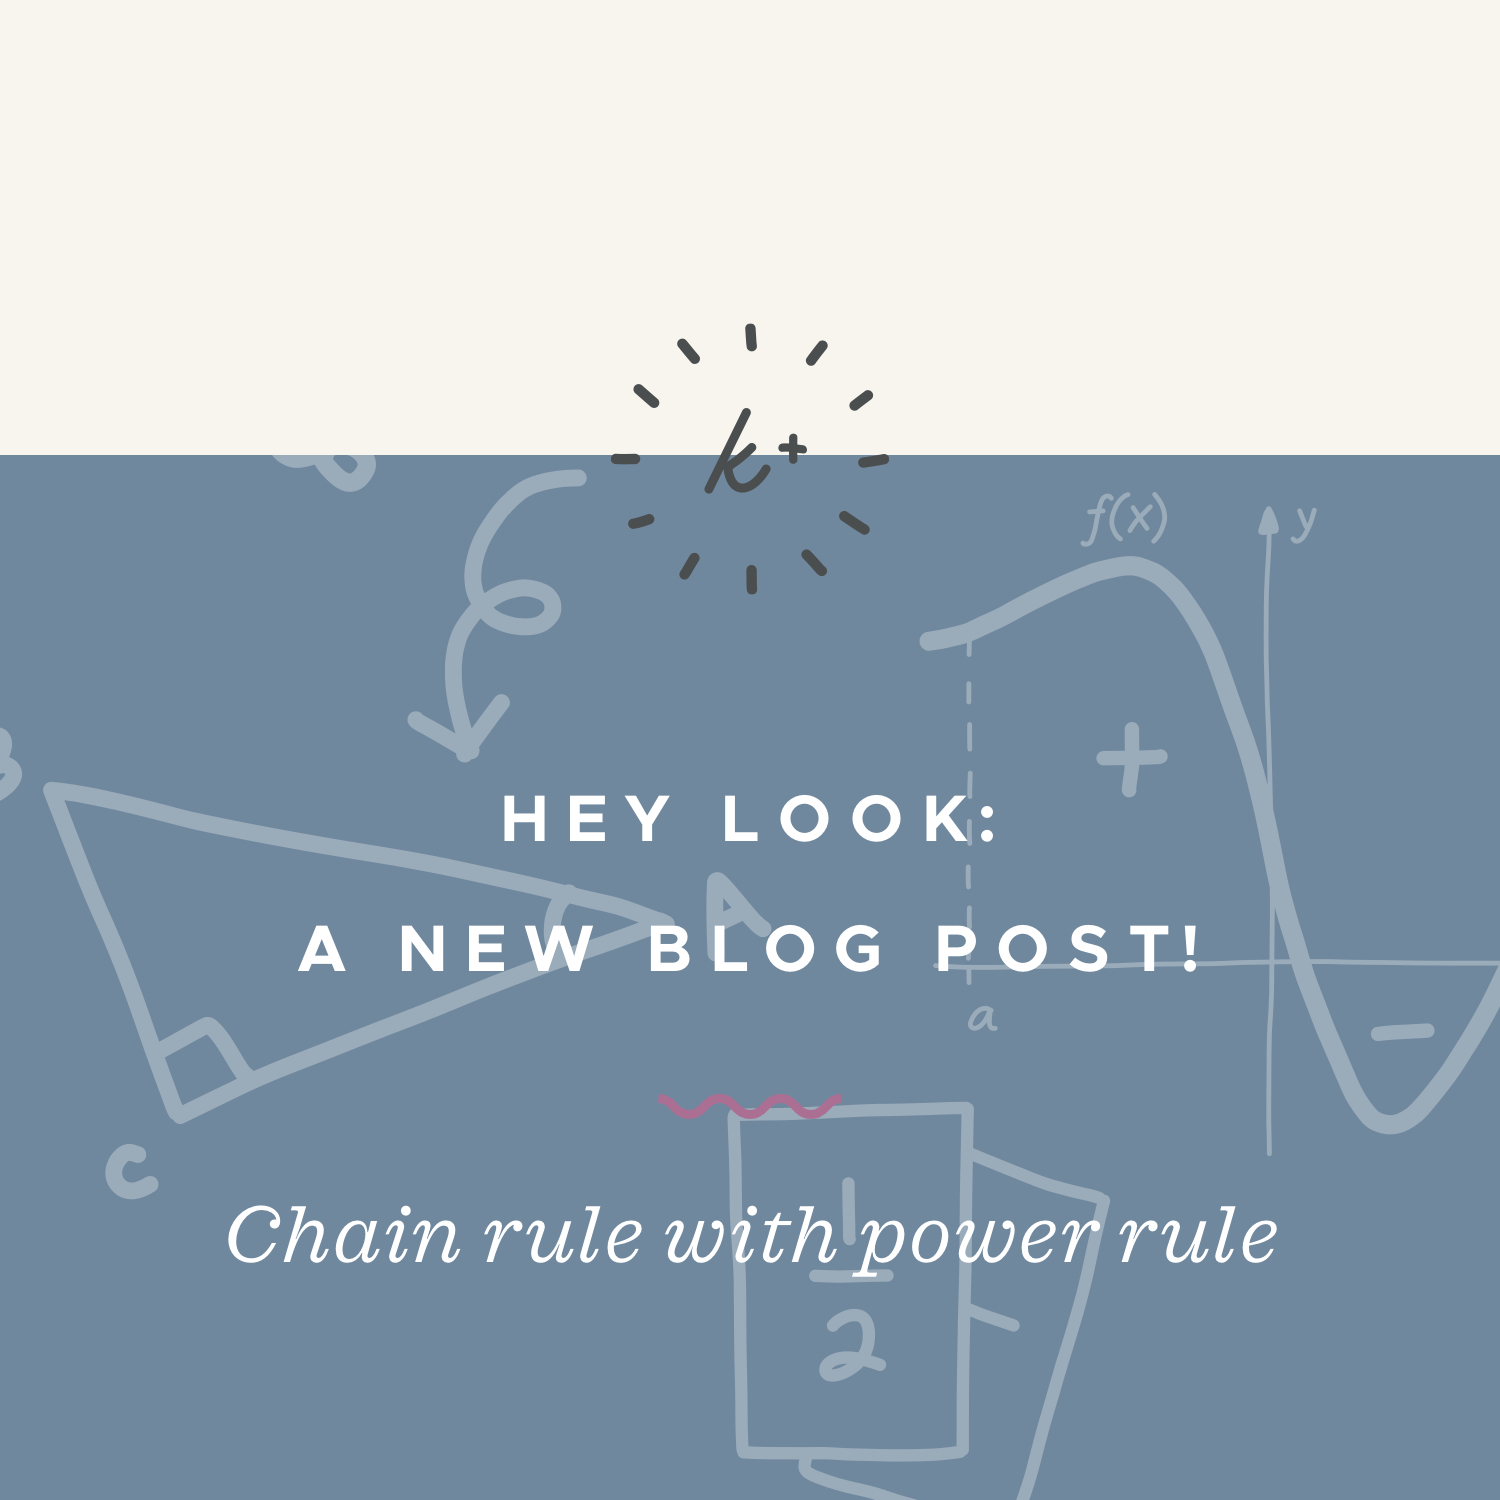 Chain rule with power rule blog post.jpeg